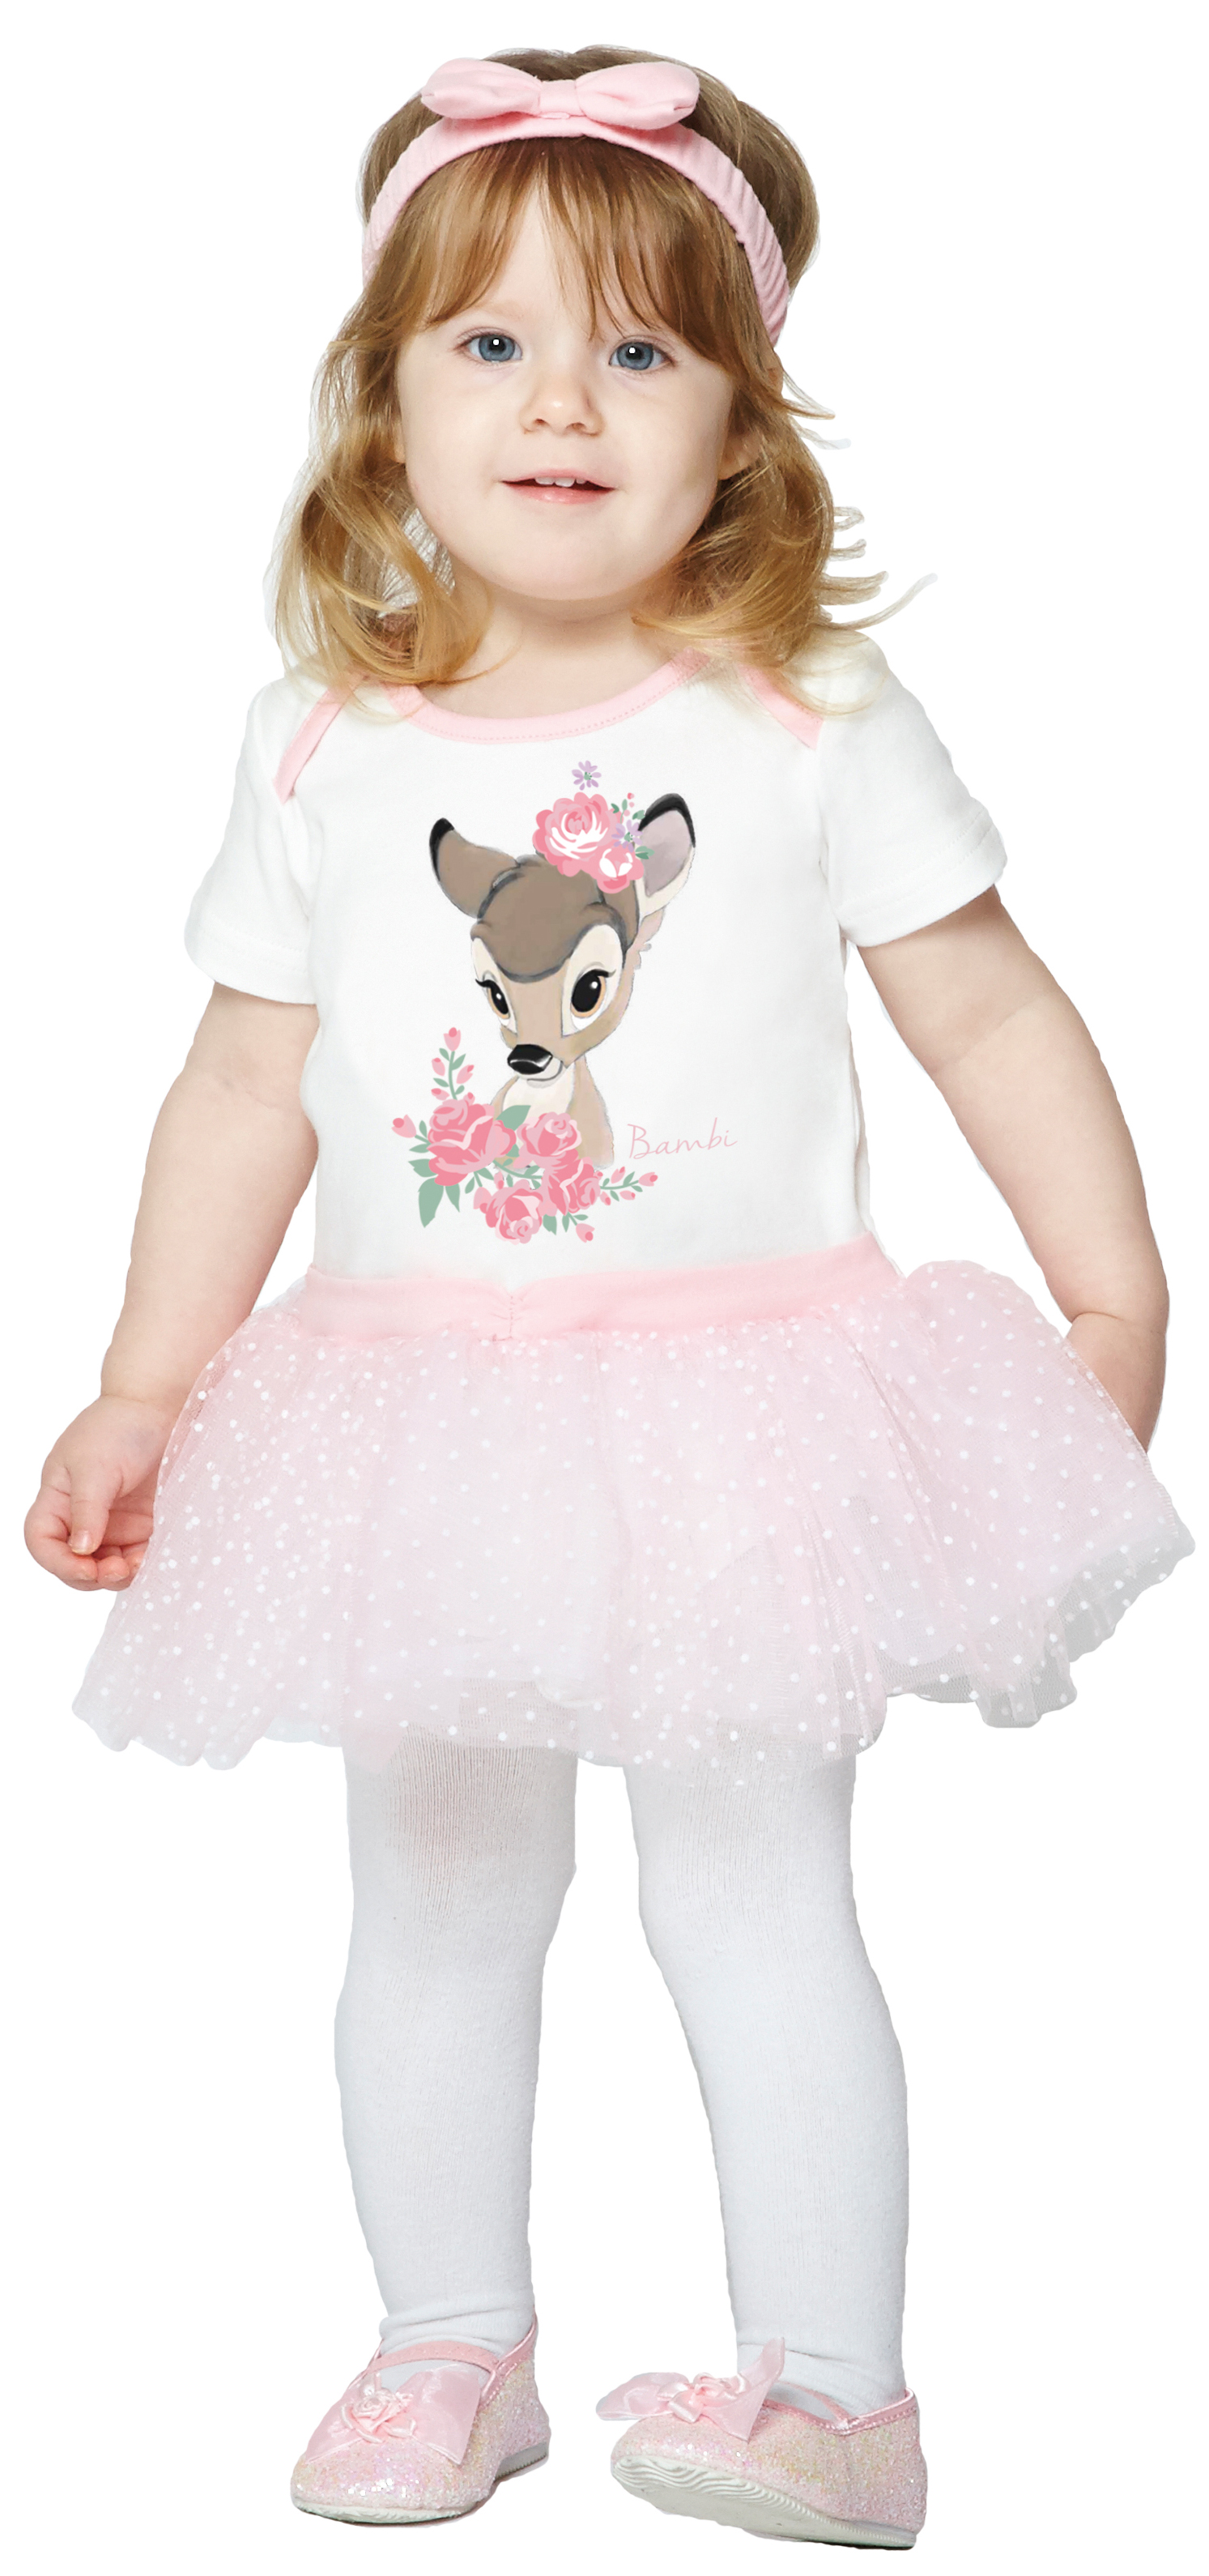 3581596507f Details about Bambi Romper 0-24 Months Fancy Dress Disney Deer Animal  Toddlers Infants Costume